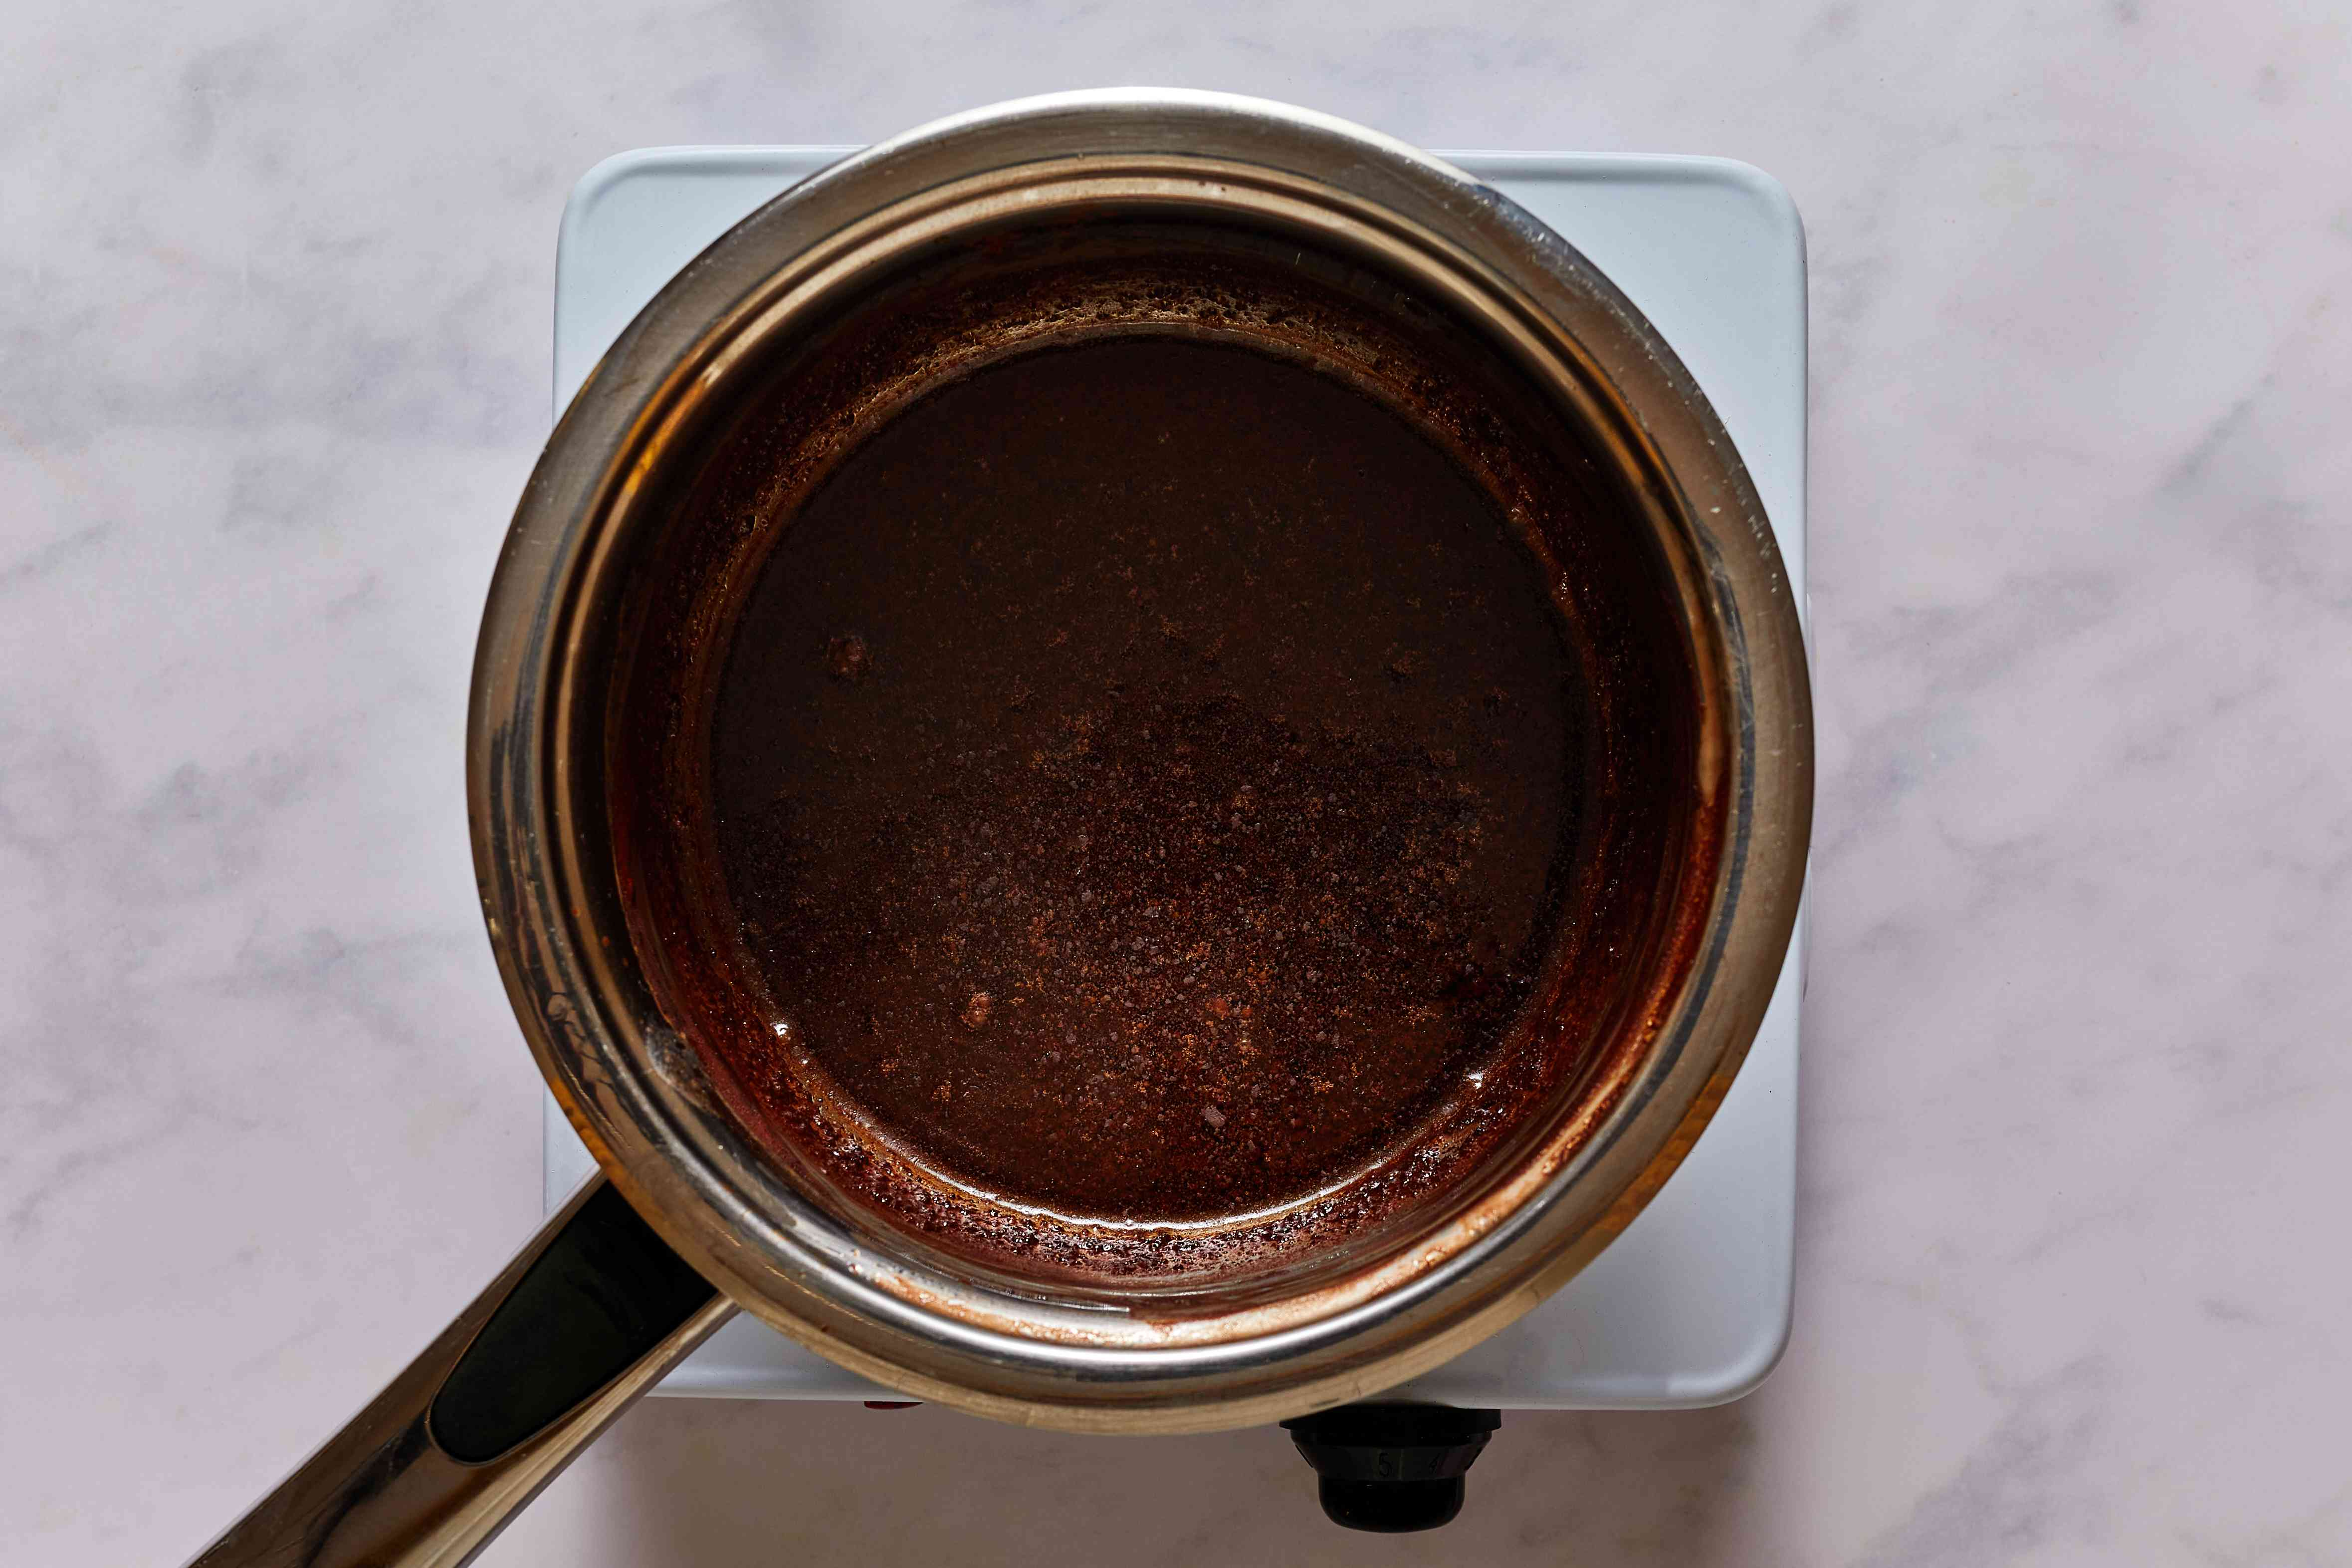 combining the butter, cocoa, and milk in a saucepan